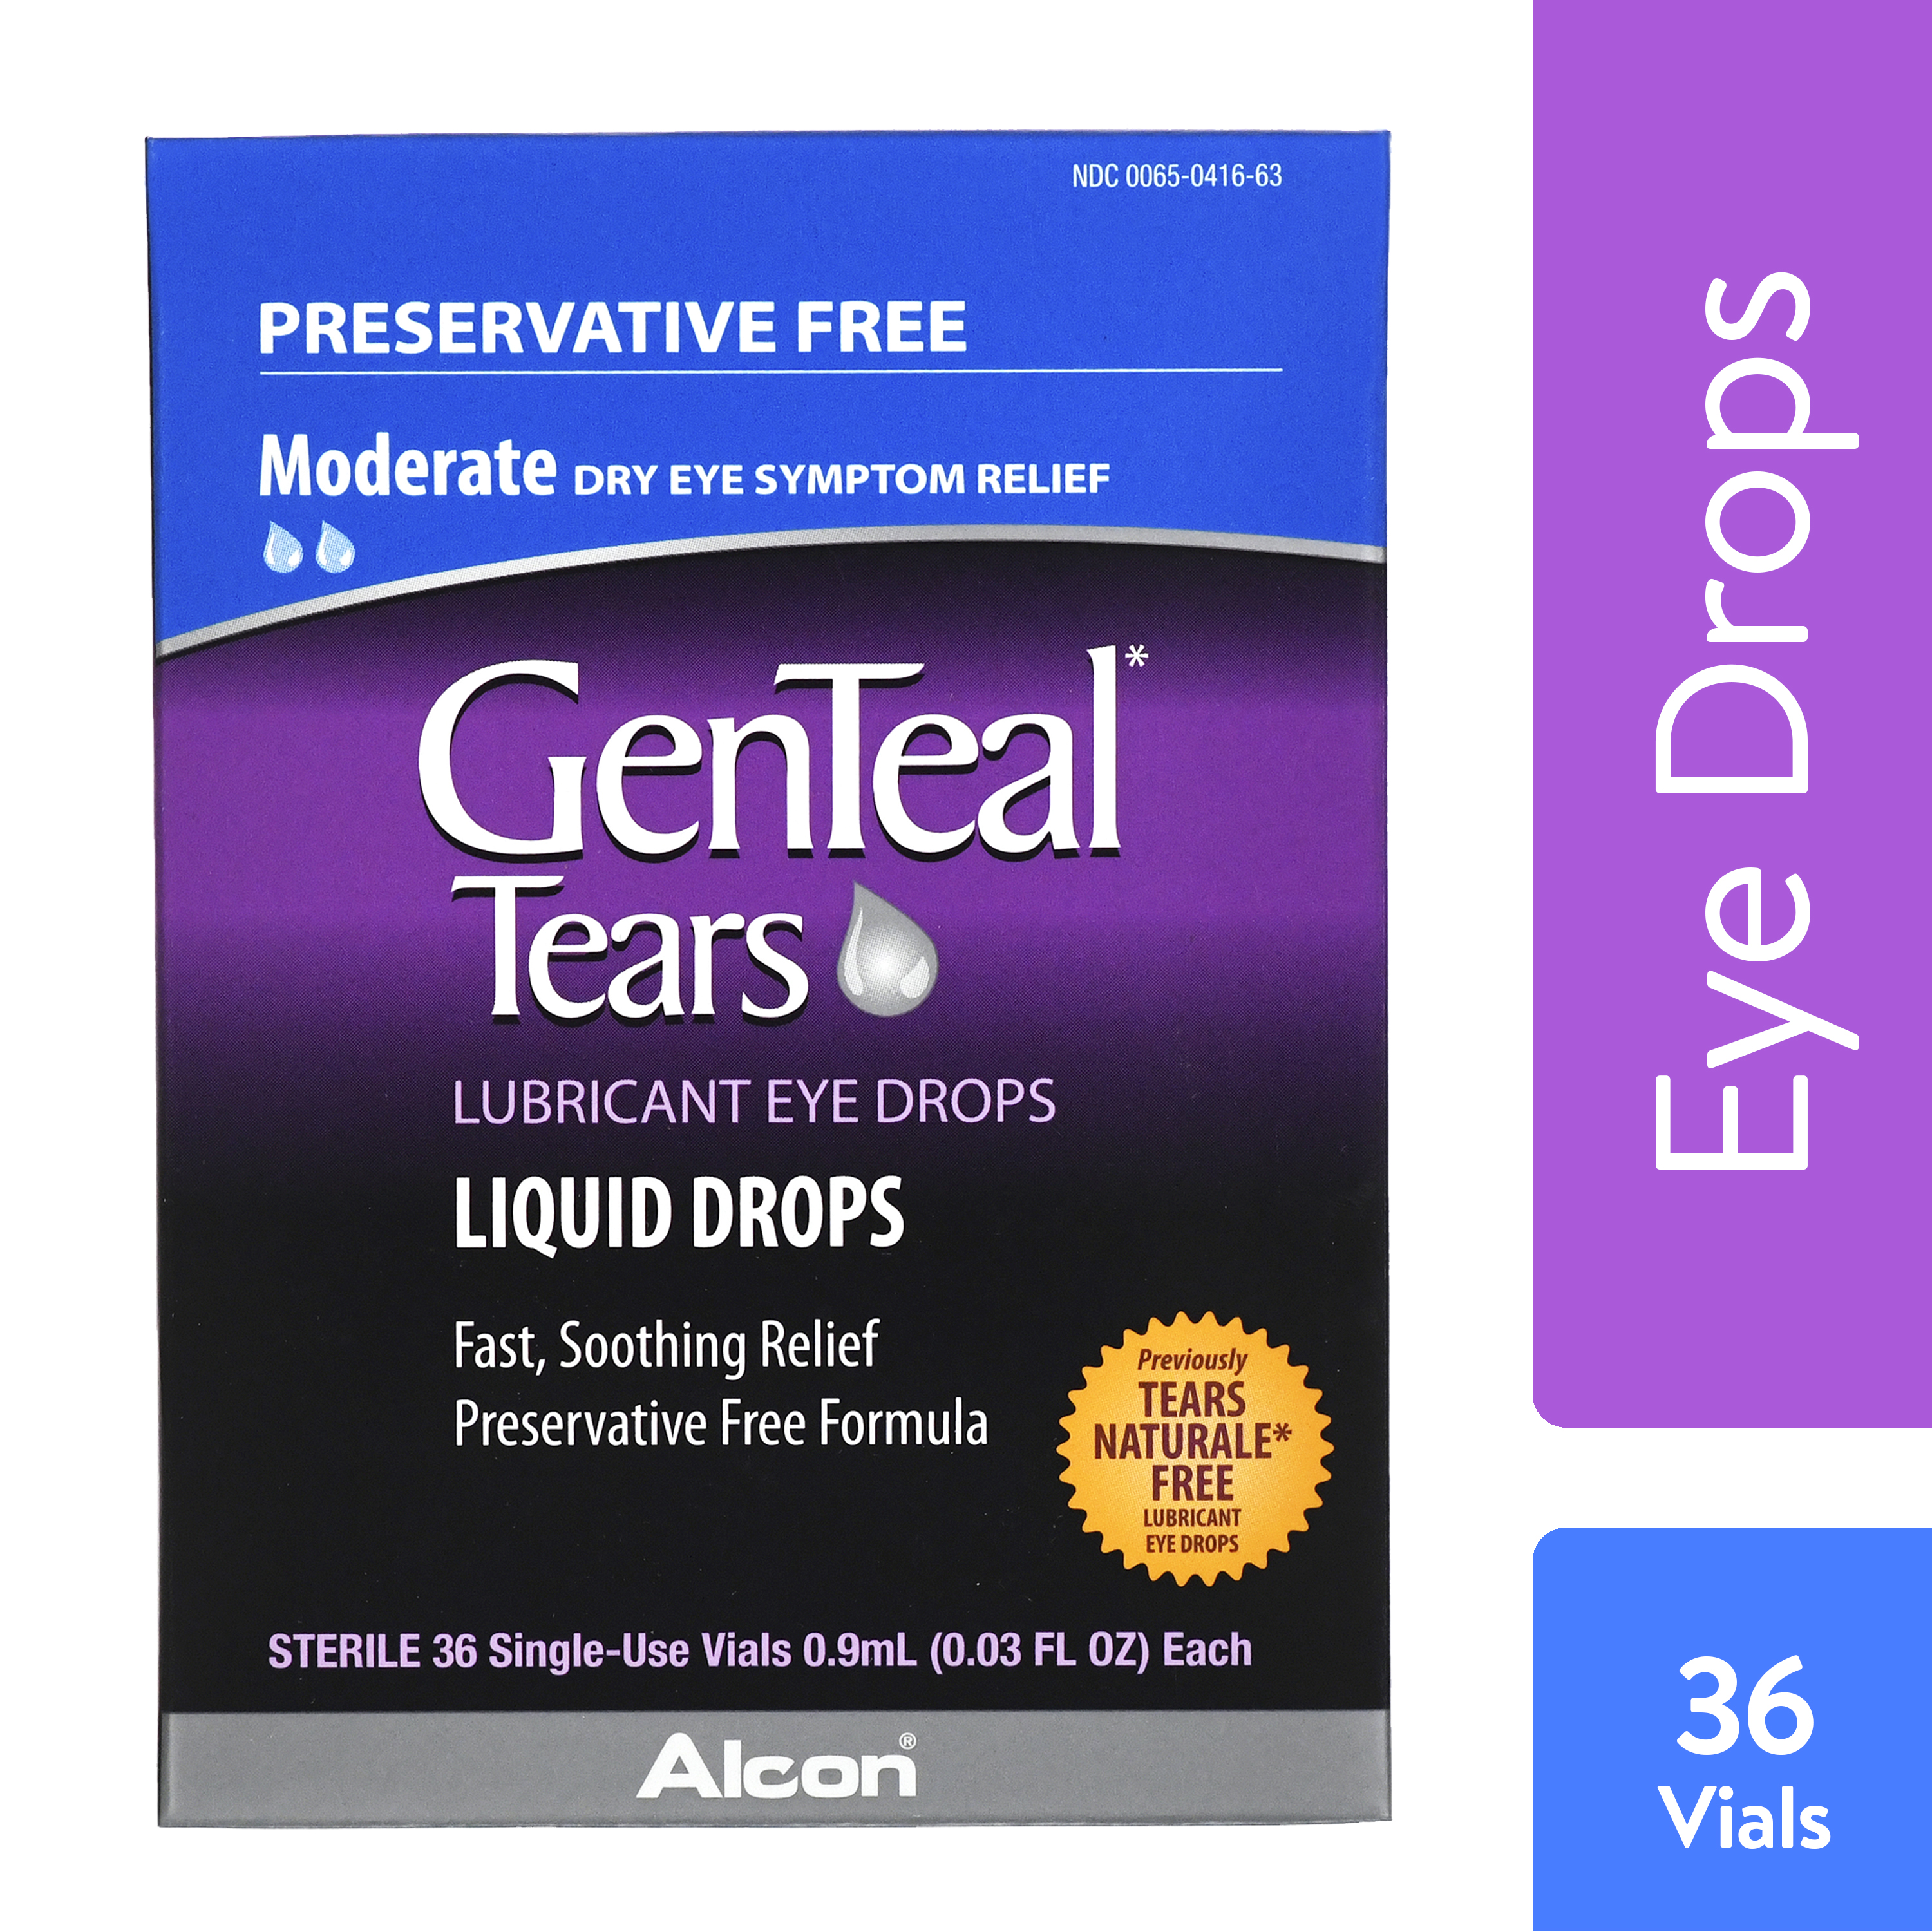 GENTEAL Tears Moderate Preservative Free Lubricant Eye Drops for Dry Eye Symptom Relief, 36 ct.